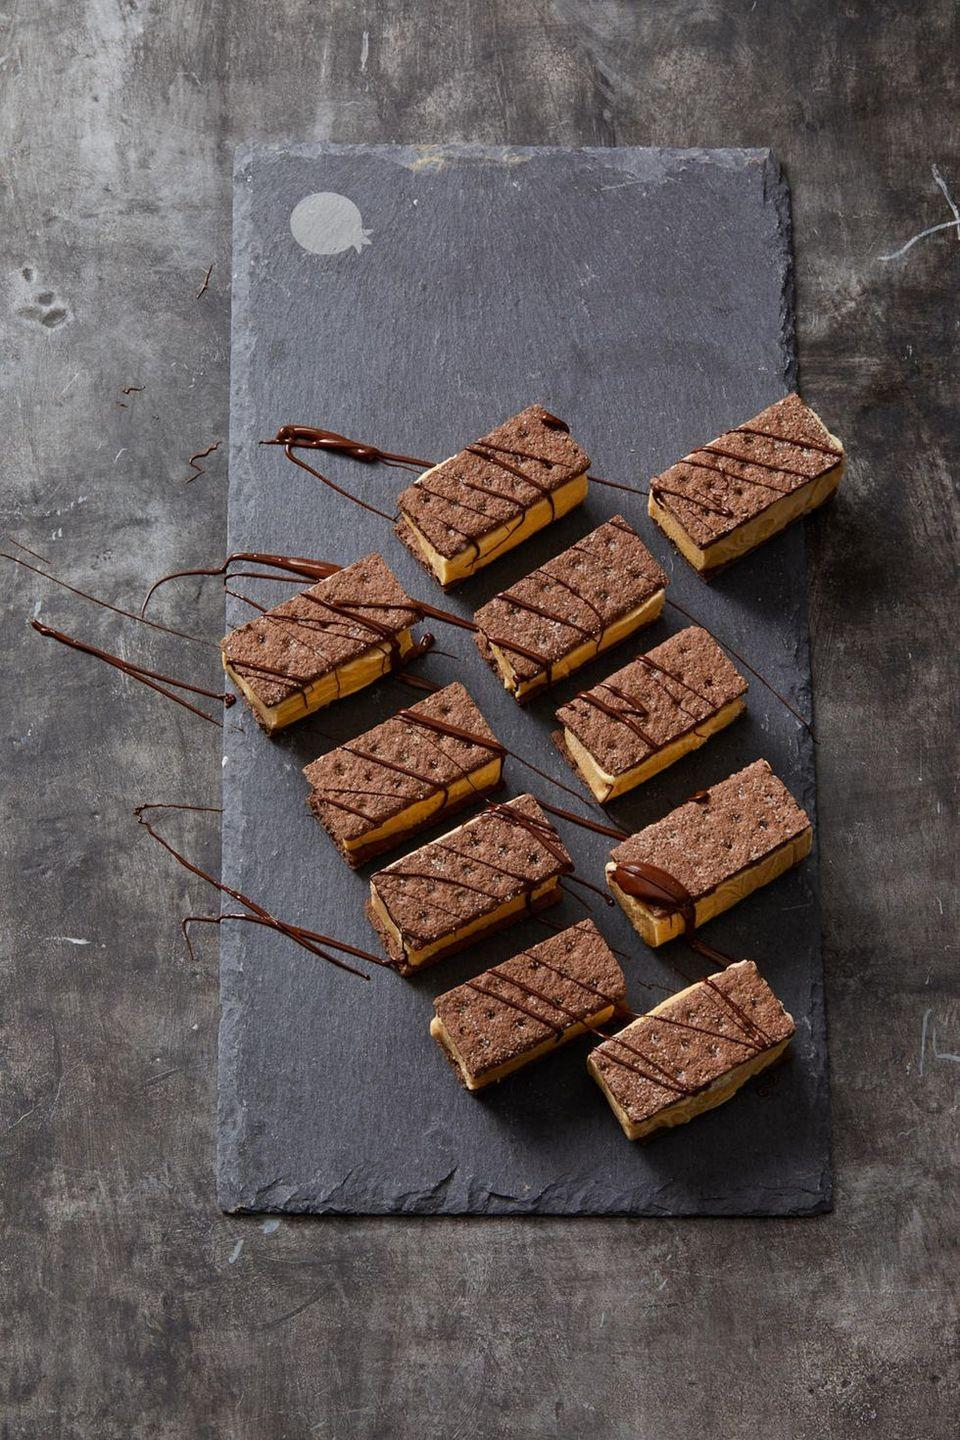 """<p>Serve up a three-ingredient dessert packed with fall flavor at your Halloween bash this year.<br></p><p><em><a href=""""https://www.goodhousekeeping.com/food-recipes/a28542349/chocolate-and-pumpkin-ice-cream-sandwiches-recipe/"""" rel=""""nofollow noopener"""" target=""""_blank"""" data-ylk=""""slk:Get the recipe for Chocolate and Pumpkin Ice Cream Sandwiches »"""" class=""""link rapid-noclick-resp"""">Get the recipe for Chocolate and Pumpkin Ice Cream Sandwiches »</a></em></p>"""